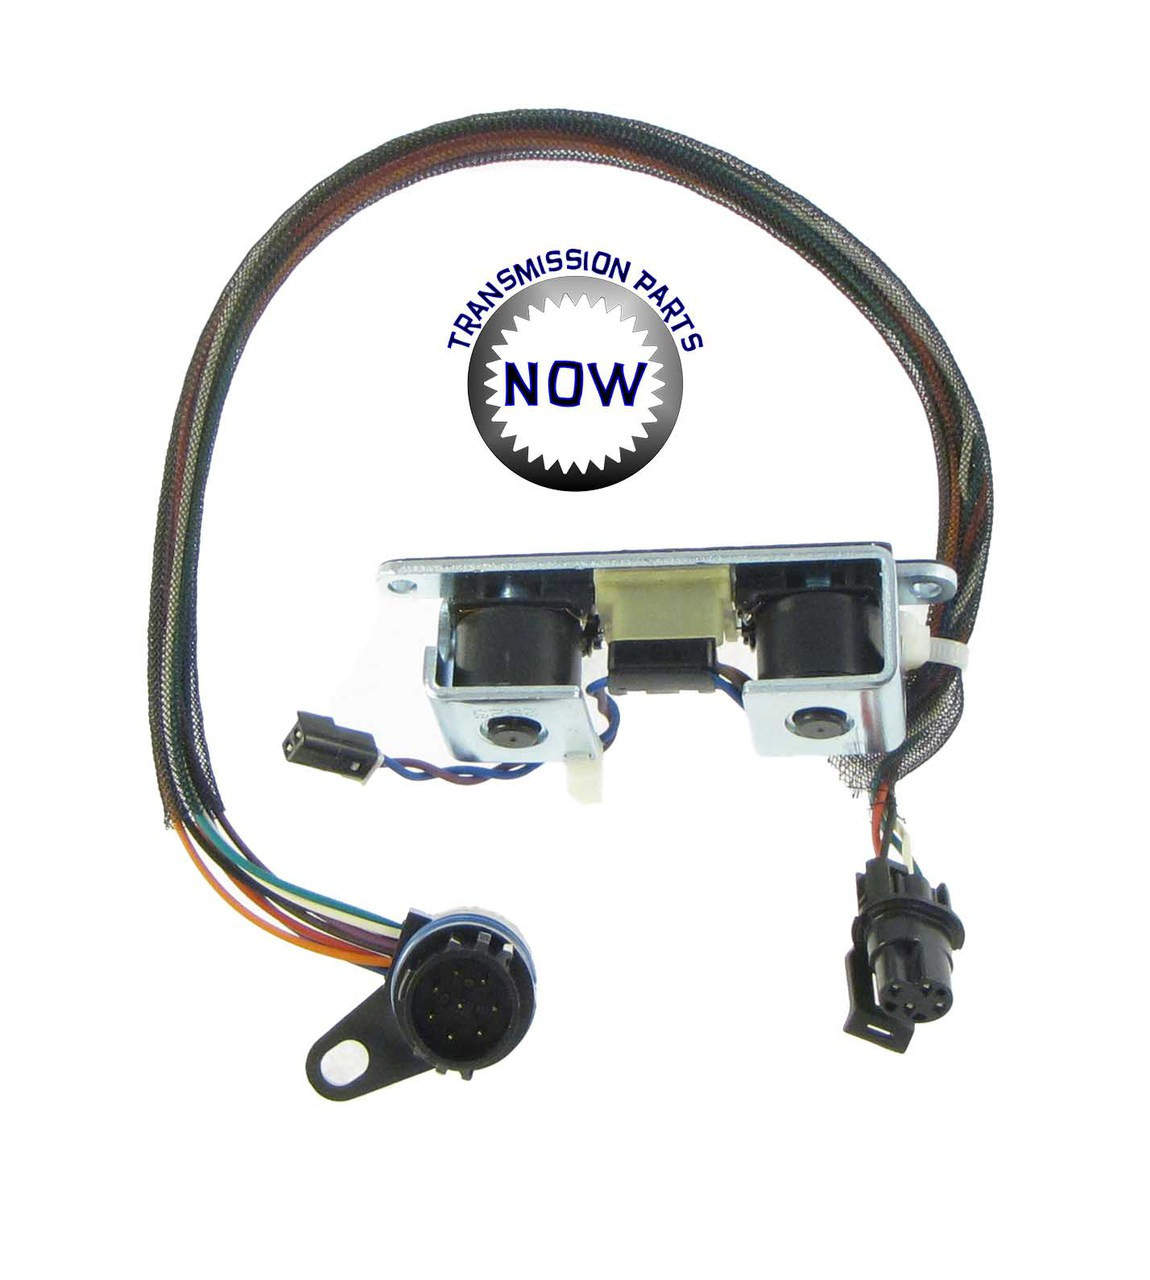 21599 Fits All Chrysler Dodge Jeep Products with The 42RE A500 ...